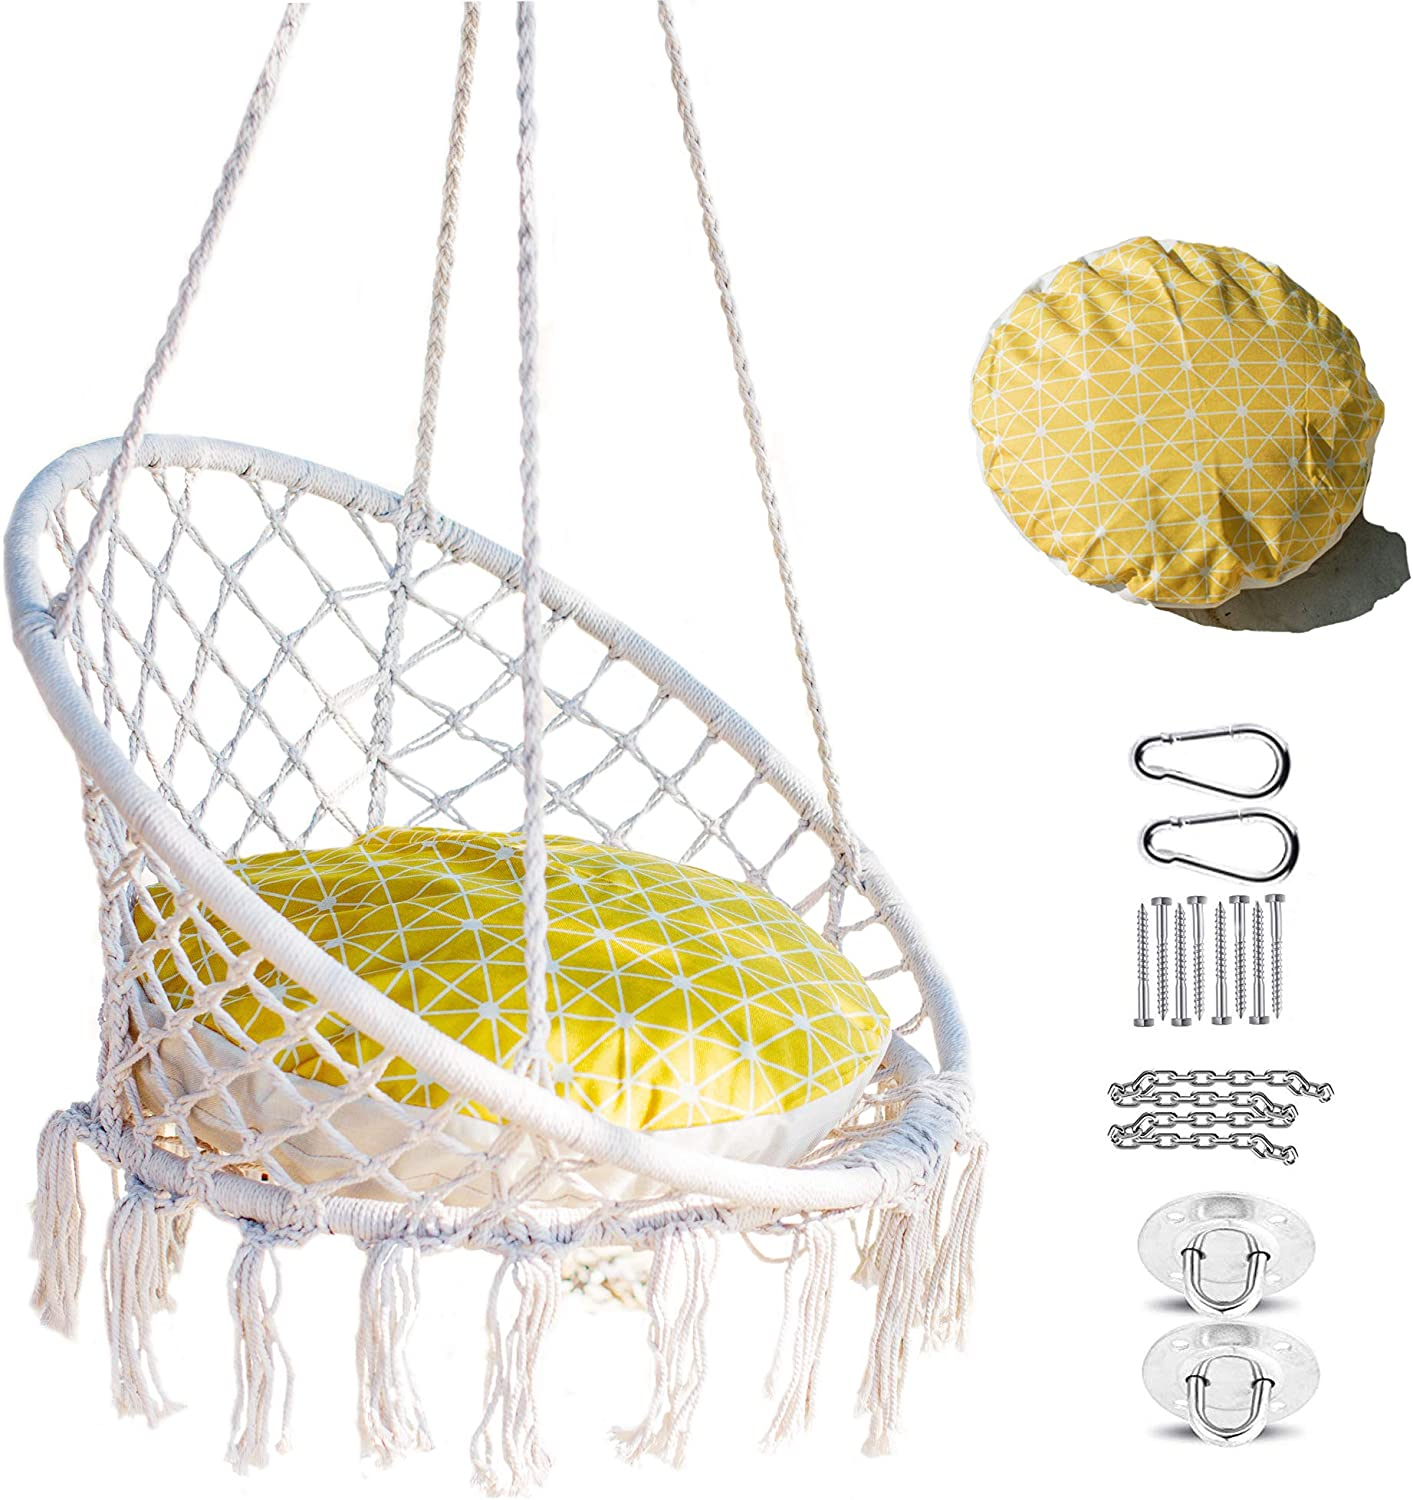 Nooksta Macrame Swinging Chair - Included Yellow Starburst Cushion & Hanging Kit for Hammock Stand. Great Hammock Chair for Bedroom, Room Swing or Hang Chair.